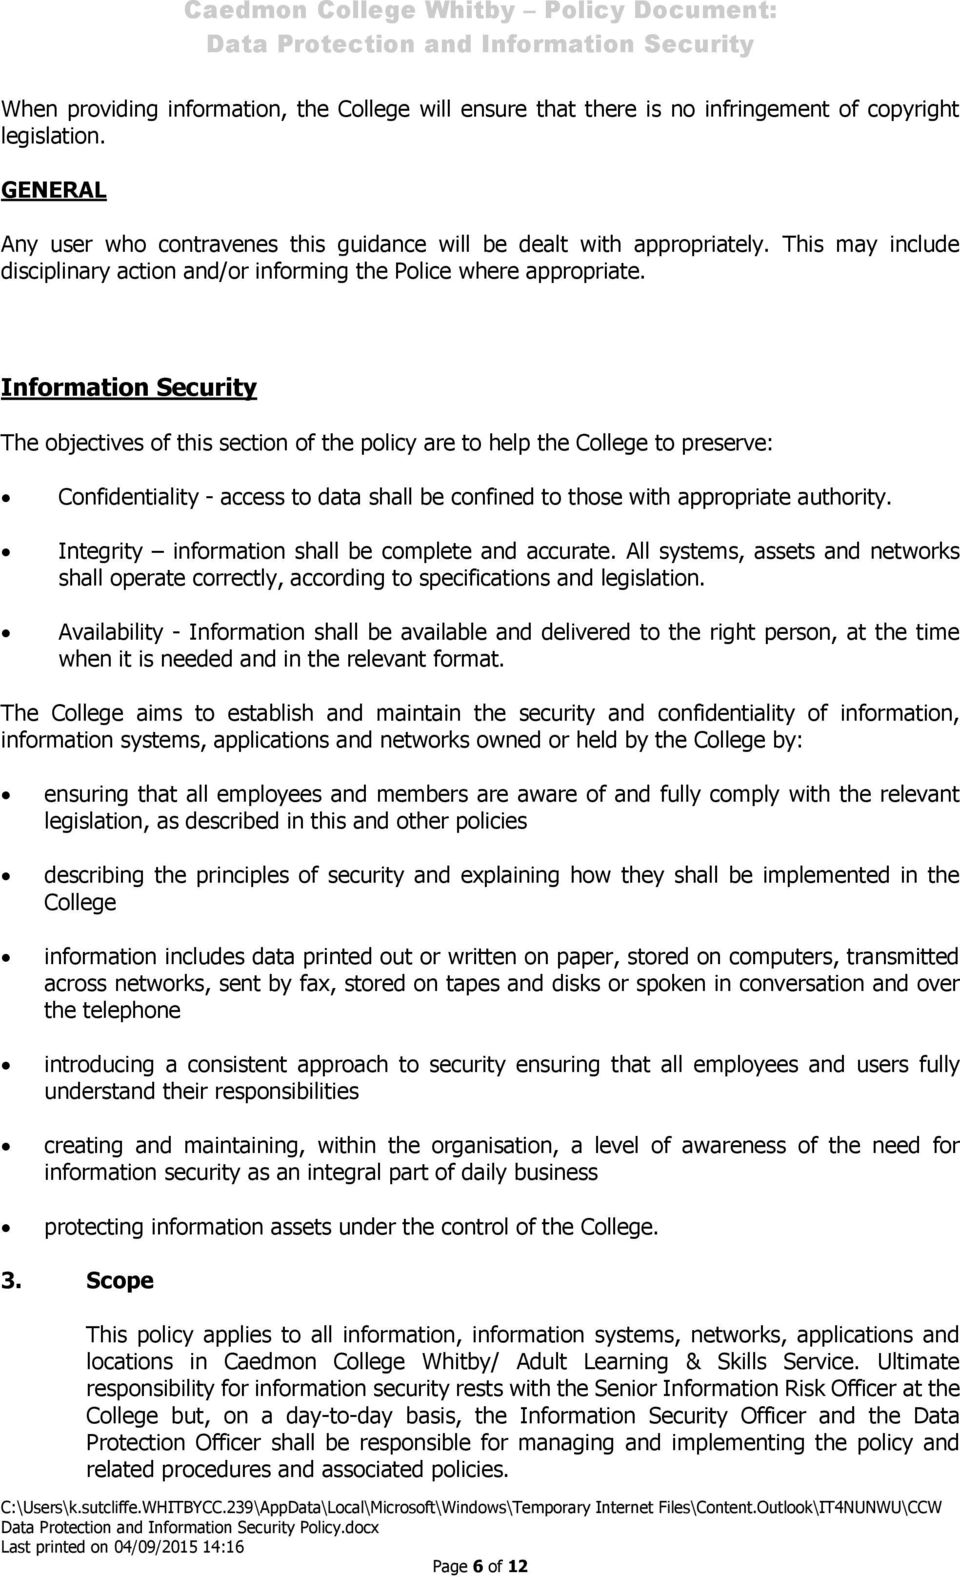 Information Security The objectives of this section of the policy are to help the College to preserve: Confidentiality - access to data shall be confined to those with appropriate authority.